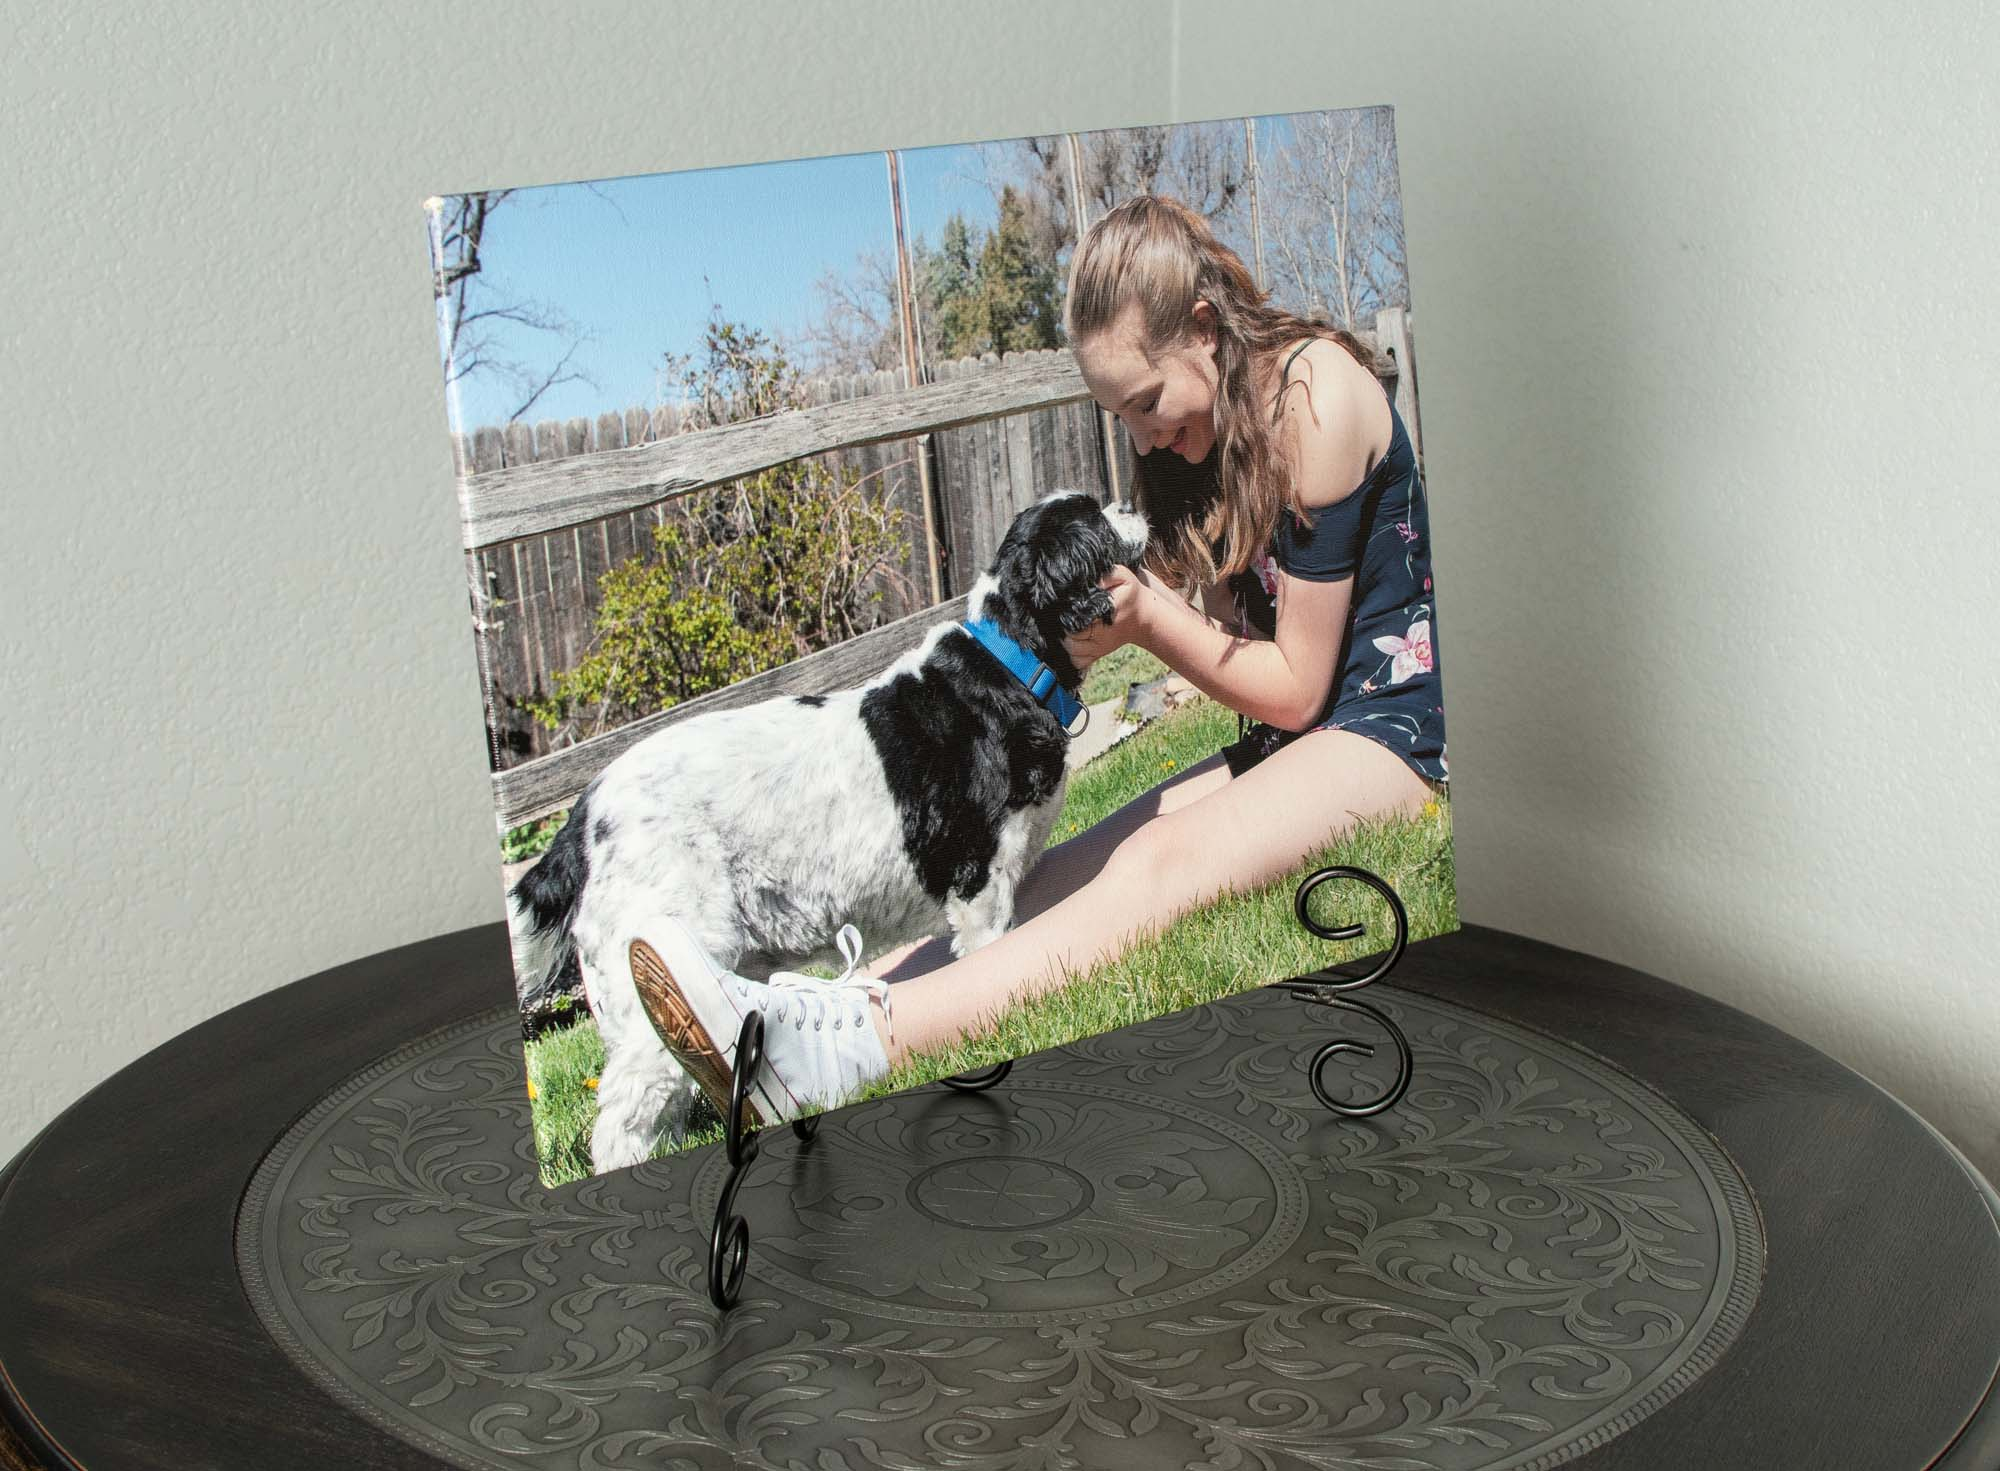 Canvas Floats - The same quality canvas printing as our gallery wraps, only this canvas product is wrapped around a lightweight gatorfoam board, giving it a more lightweight, modern feel. Canvas floats are finished with black paper backing and a foam floater block with pre-drilled holes for hanging.